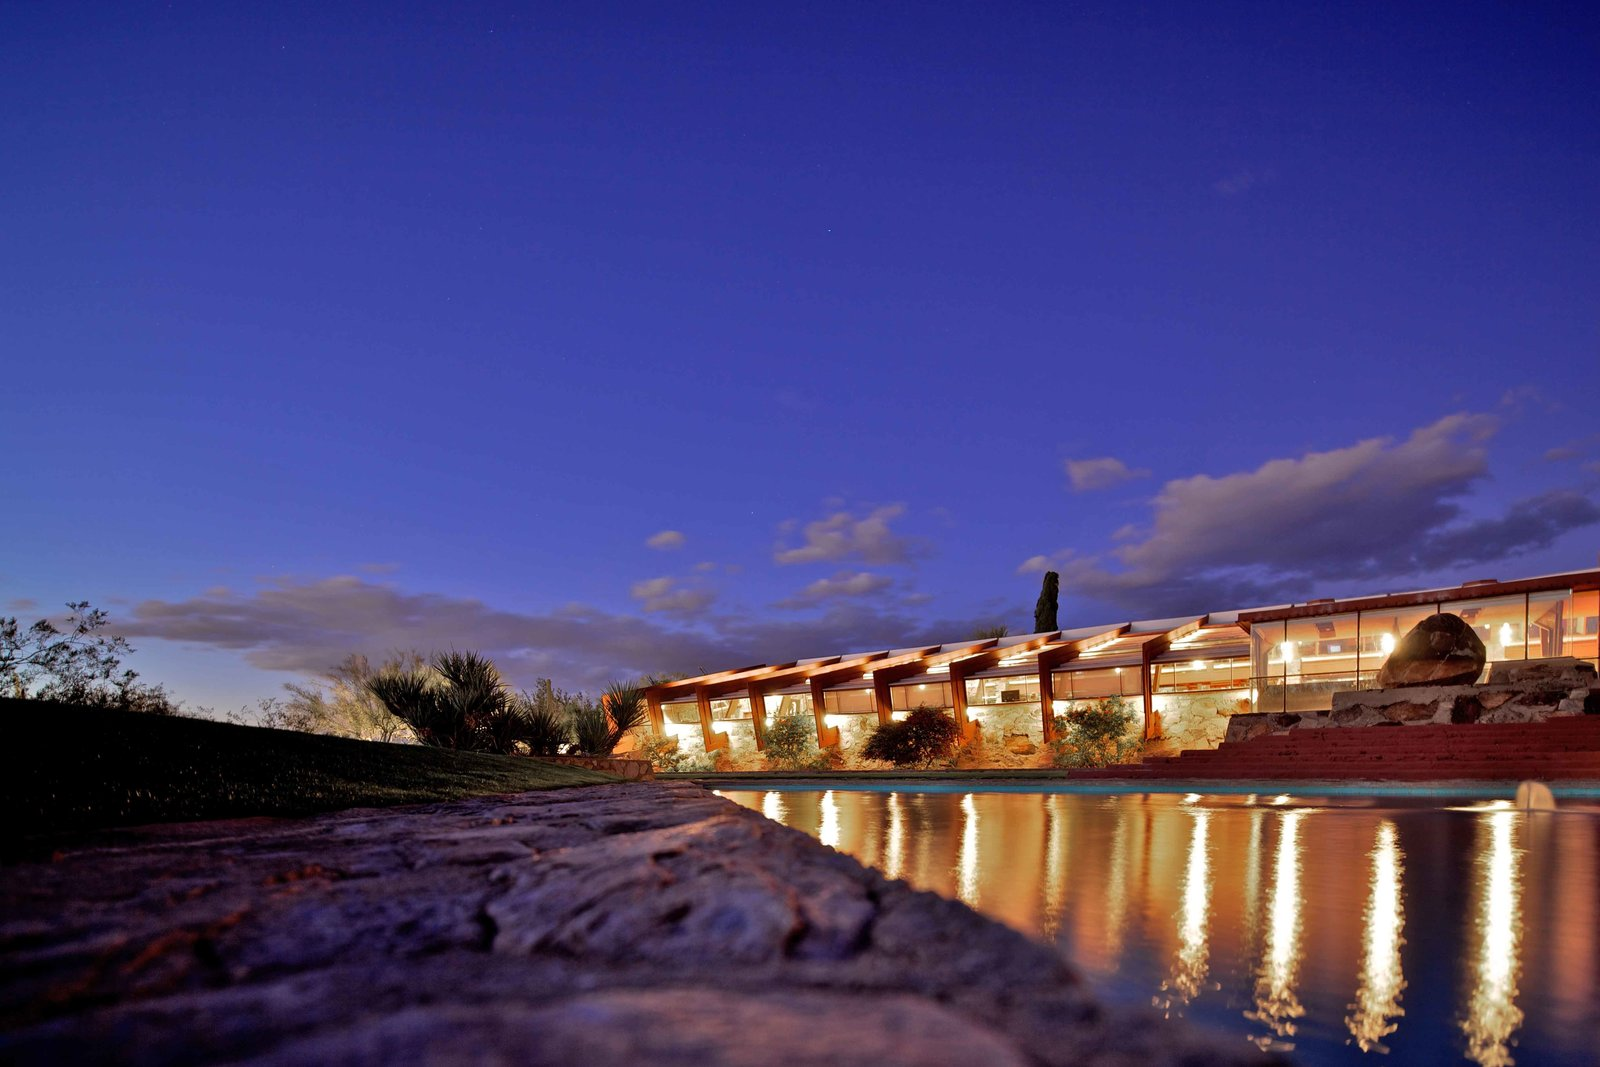 Taliesin West (1938, Scottsdale, Arizona). Wright experimented with architectural techniques on his winter home and studio over the course of two decades. He developed a stone masonry out of boulders and rocks found around the site. The property houses the offices of the Frank Lloyd Wright Foundation; the resident staff and students who live and work at Taliesin and Taliesin West; and the Frank Lloyd Wright School of Architecture.  Mid Modern by Jonathan Simcoe from Iconic Frank Lloyd Wright Buildings